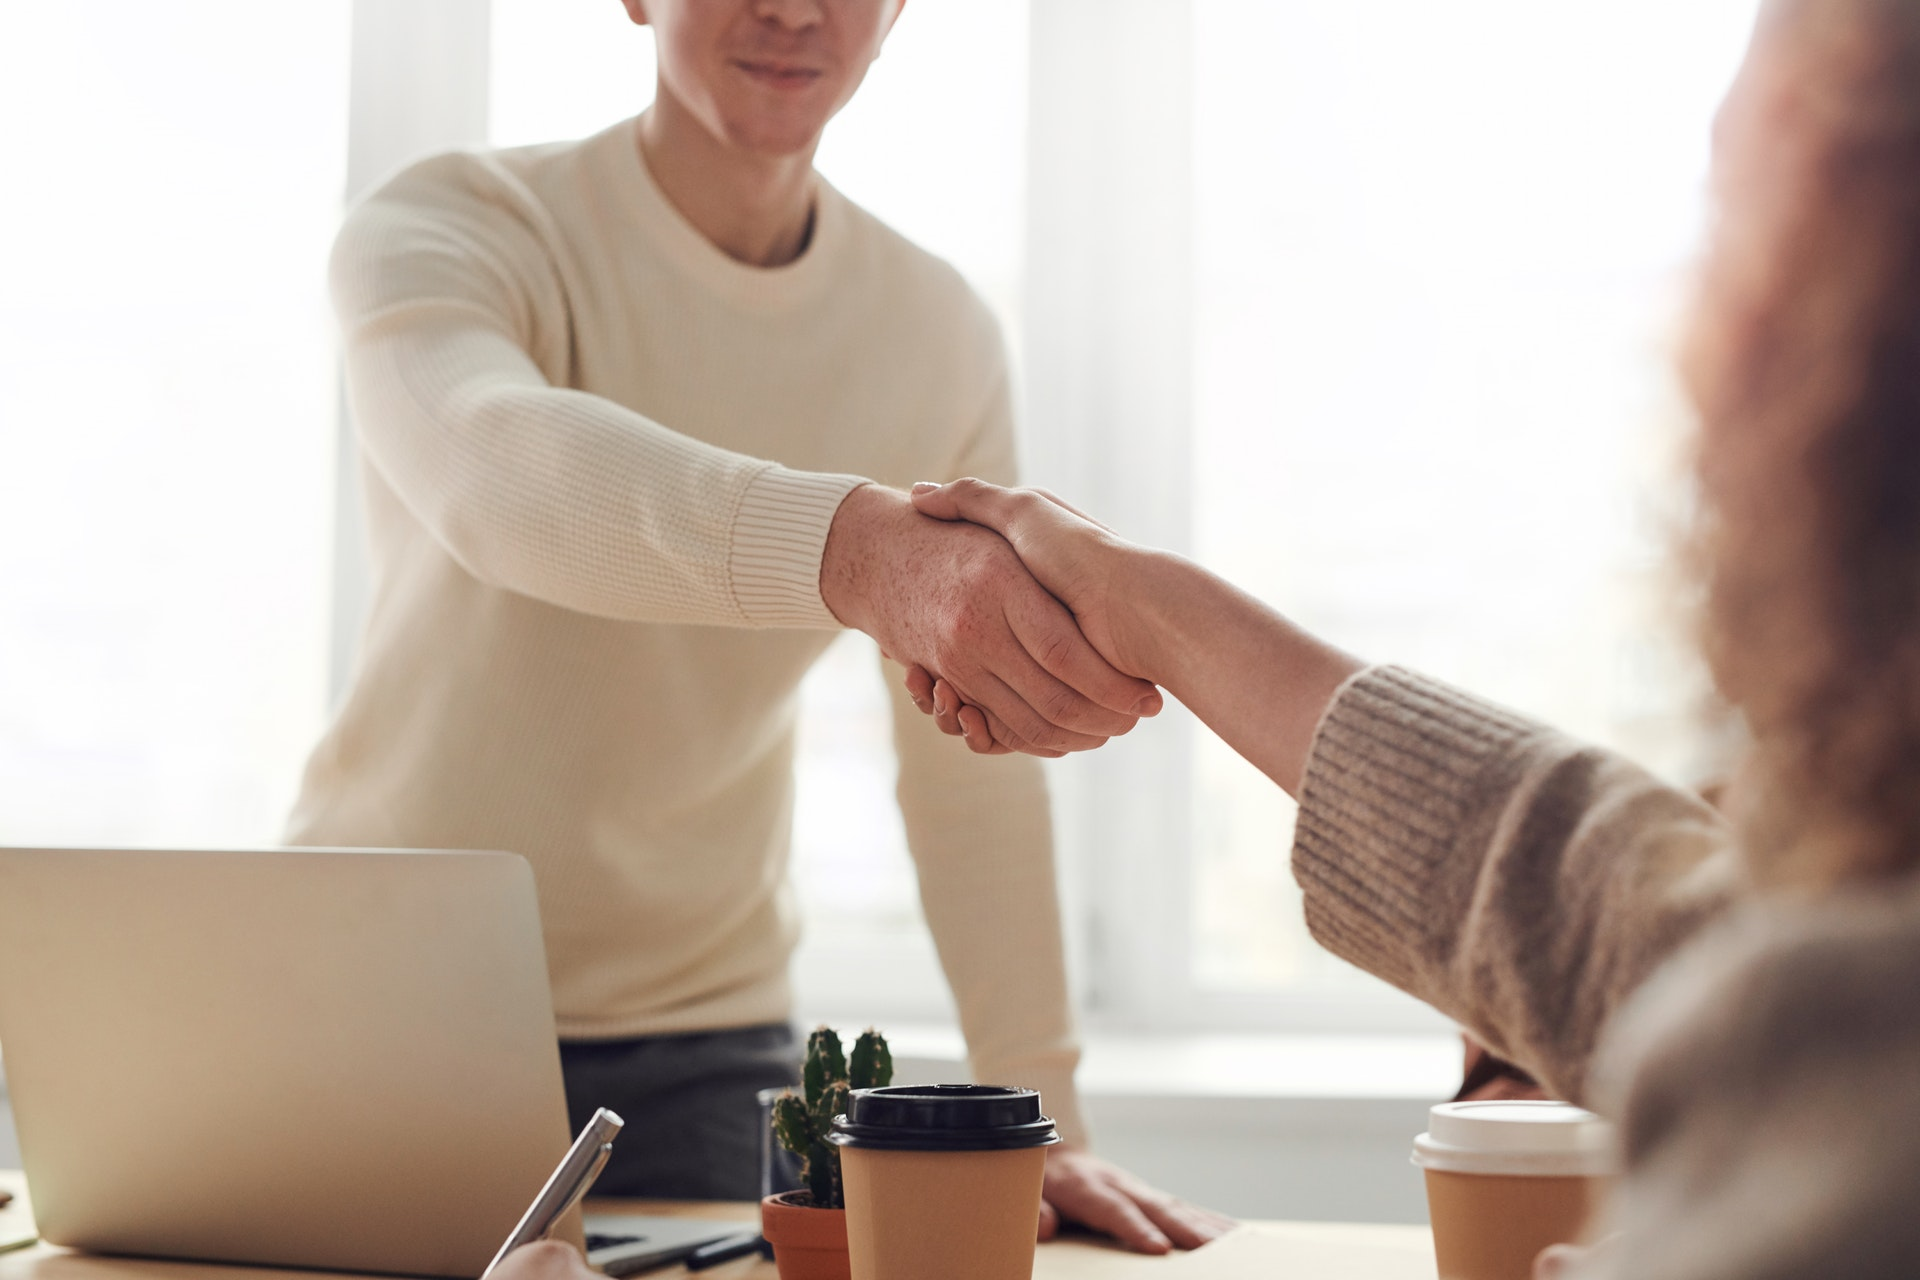 Real estate agent candidate shaking hands before interview